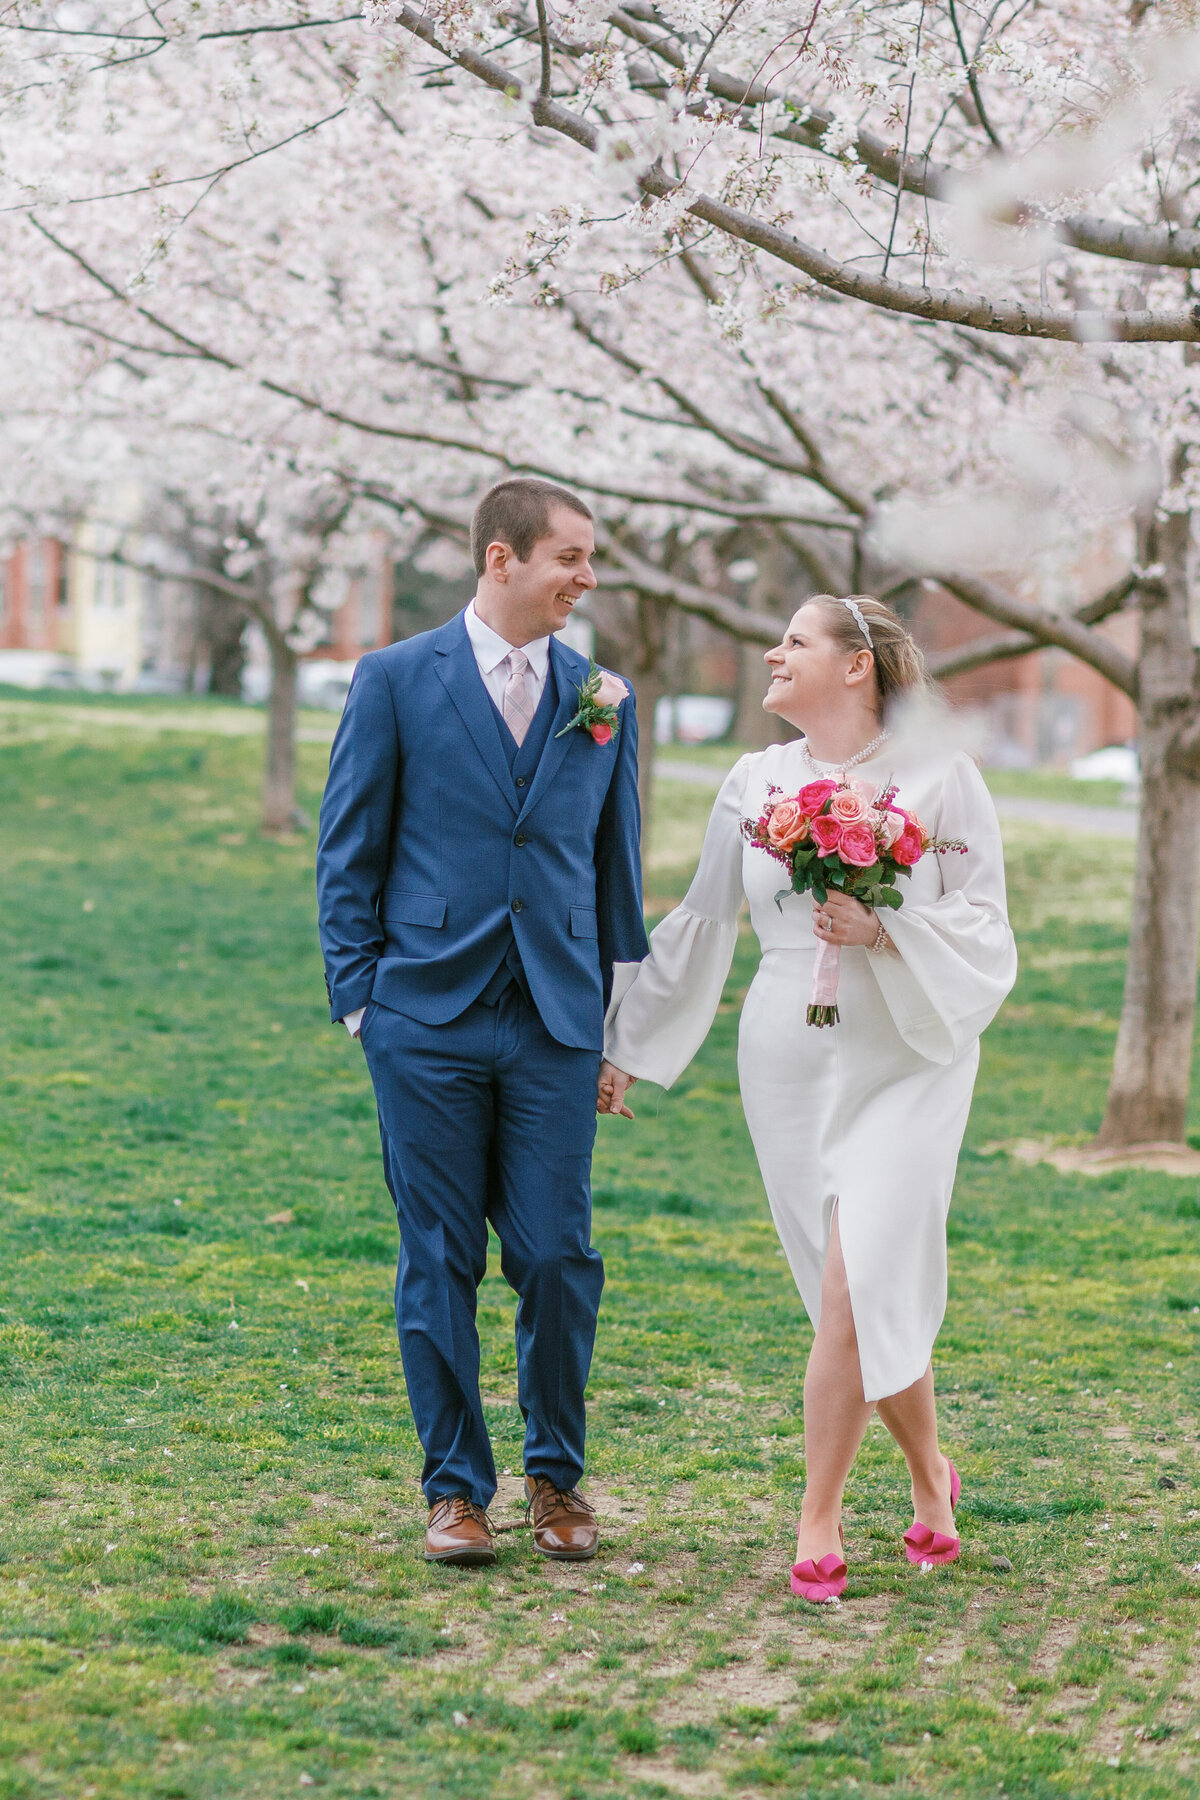 dc-cherry-blossoms-wedding-9065